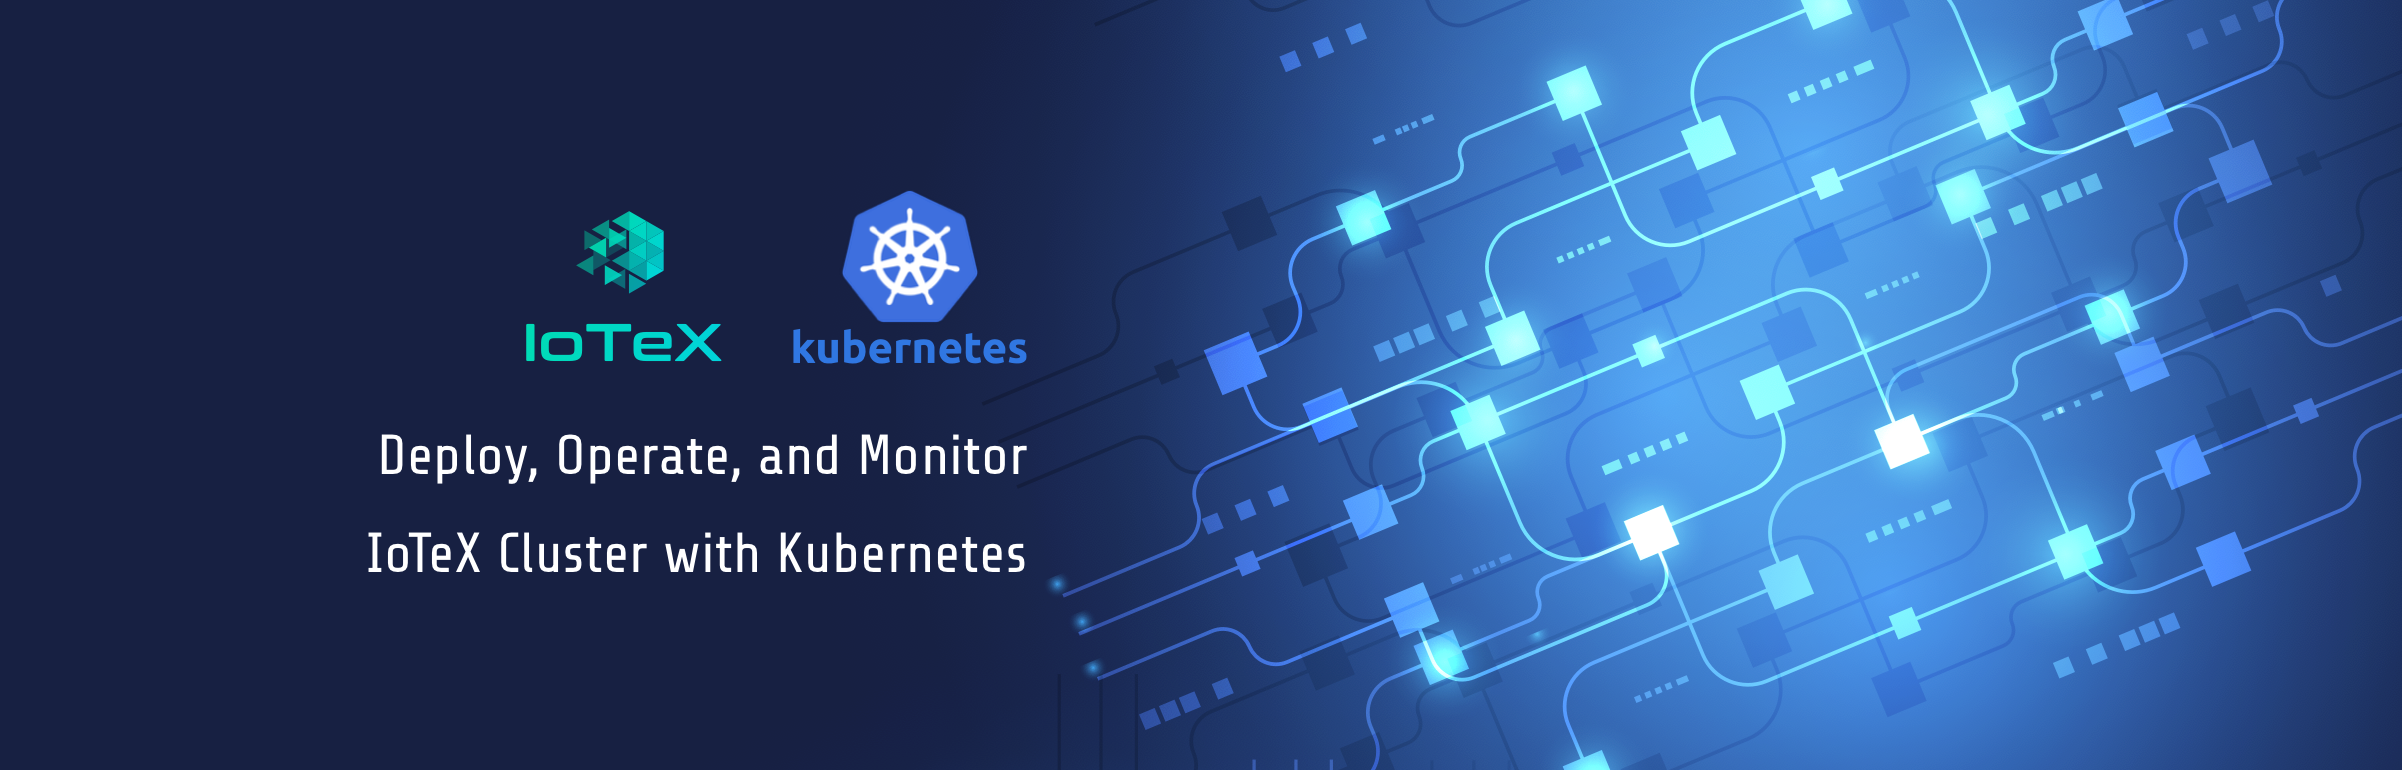 Deploy, operate, and monitor IoTeX cluster with Kubernetes - By